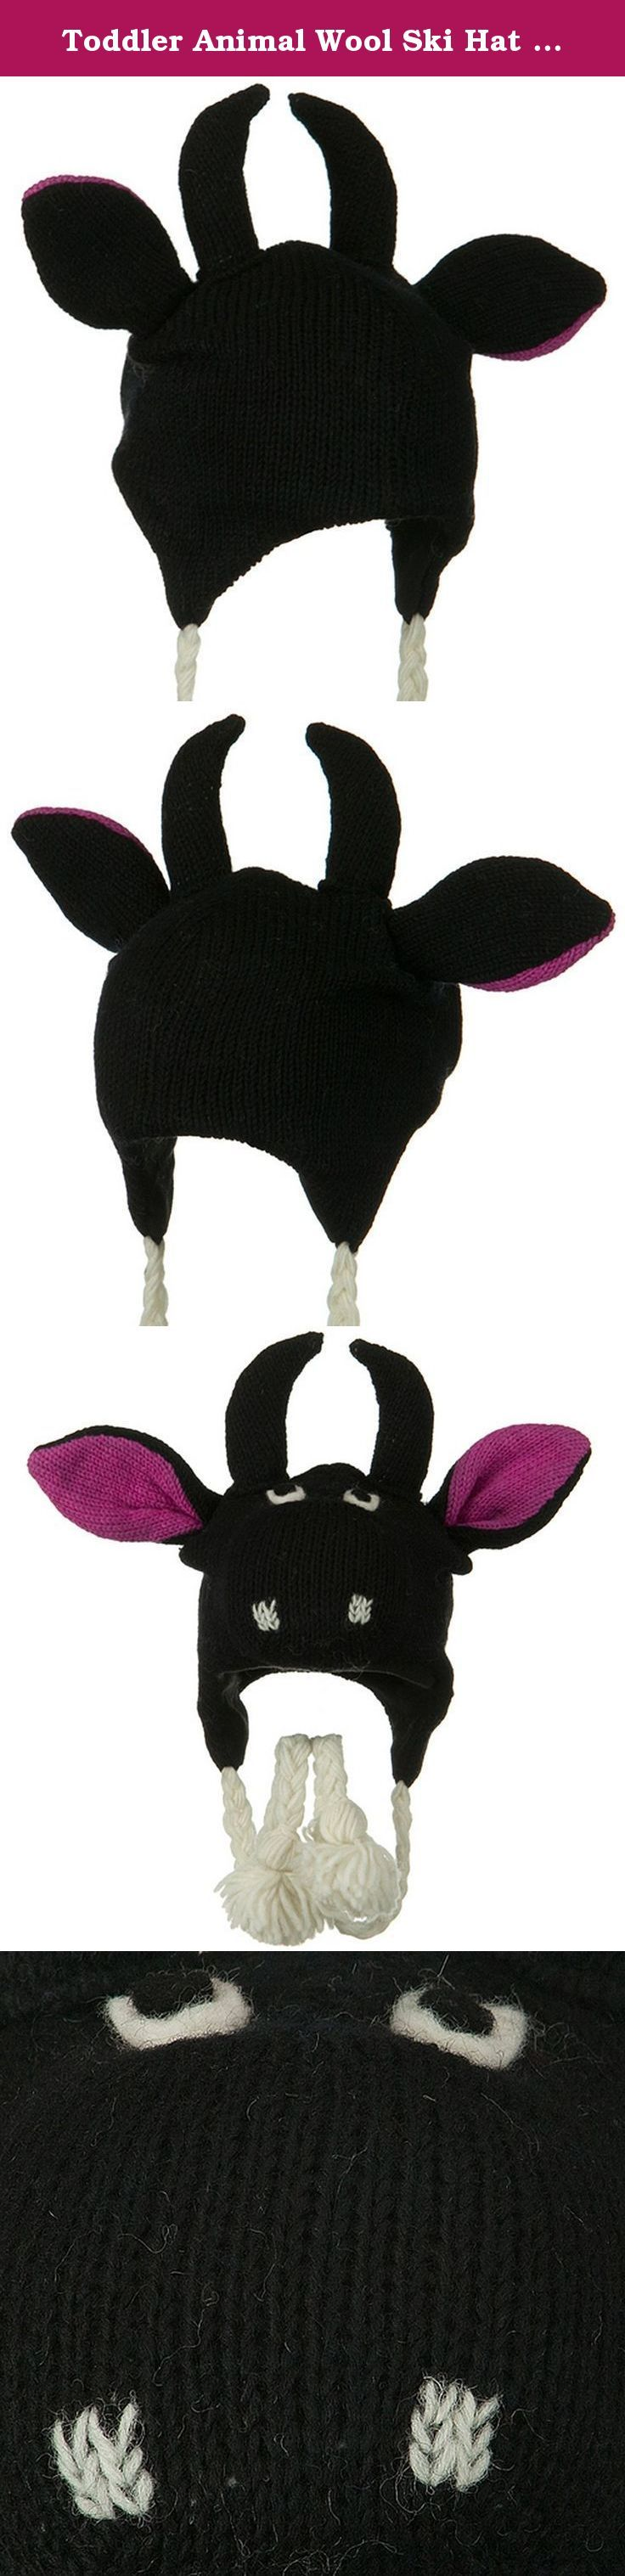 Toddler Animal Wool Ski Hat - Bull. Our Black Hot Pink Toddler Animal Wool Ski Hat is fun and cute style winter hat for any kinds of winter outdoor activities for your toddlers. Made with thick and chunky wool material with fully fleece lined inside, this ski beanie will keep your babies heads in cozy warmth all the time in cold weather. This toddler ski hat brings darling look on your toddlers as different animal features with cute animal ears and faces are sported on the front crown of...